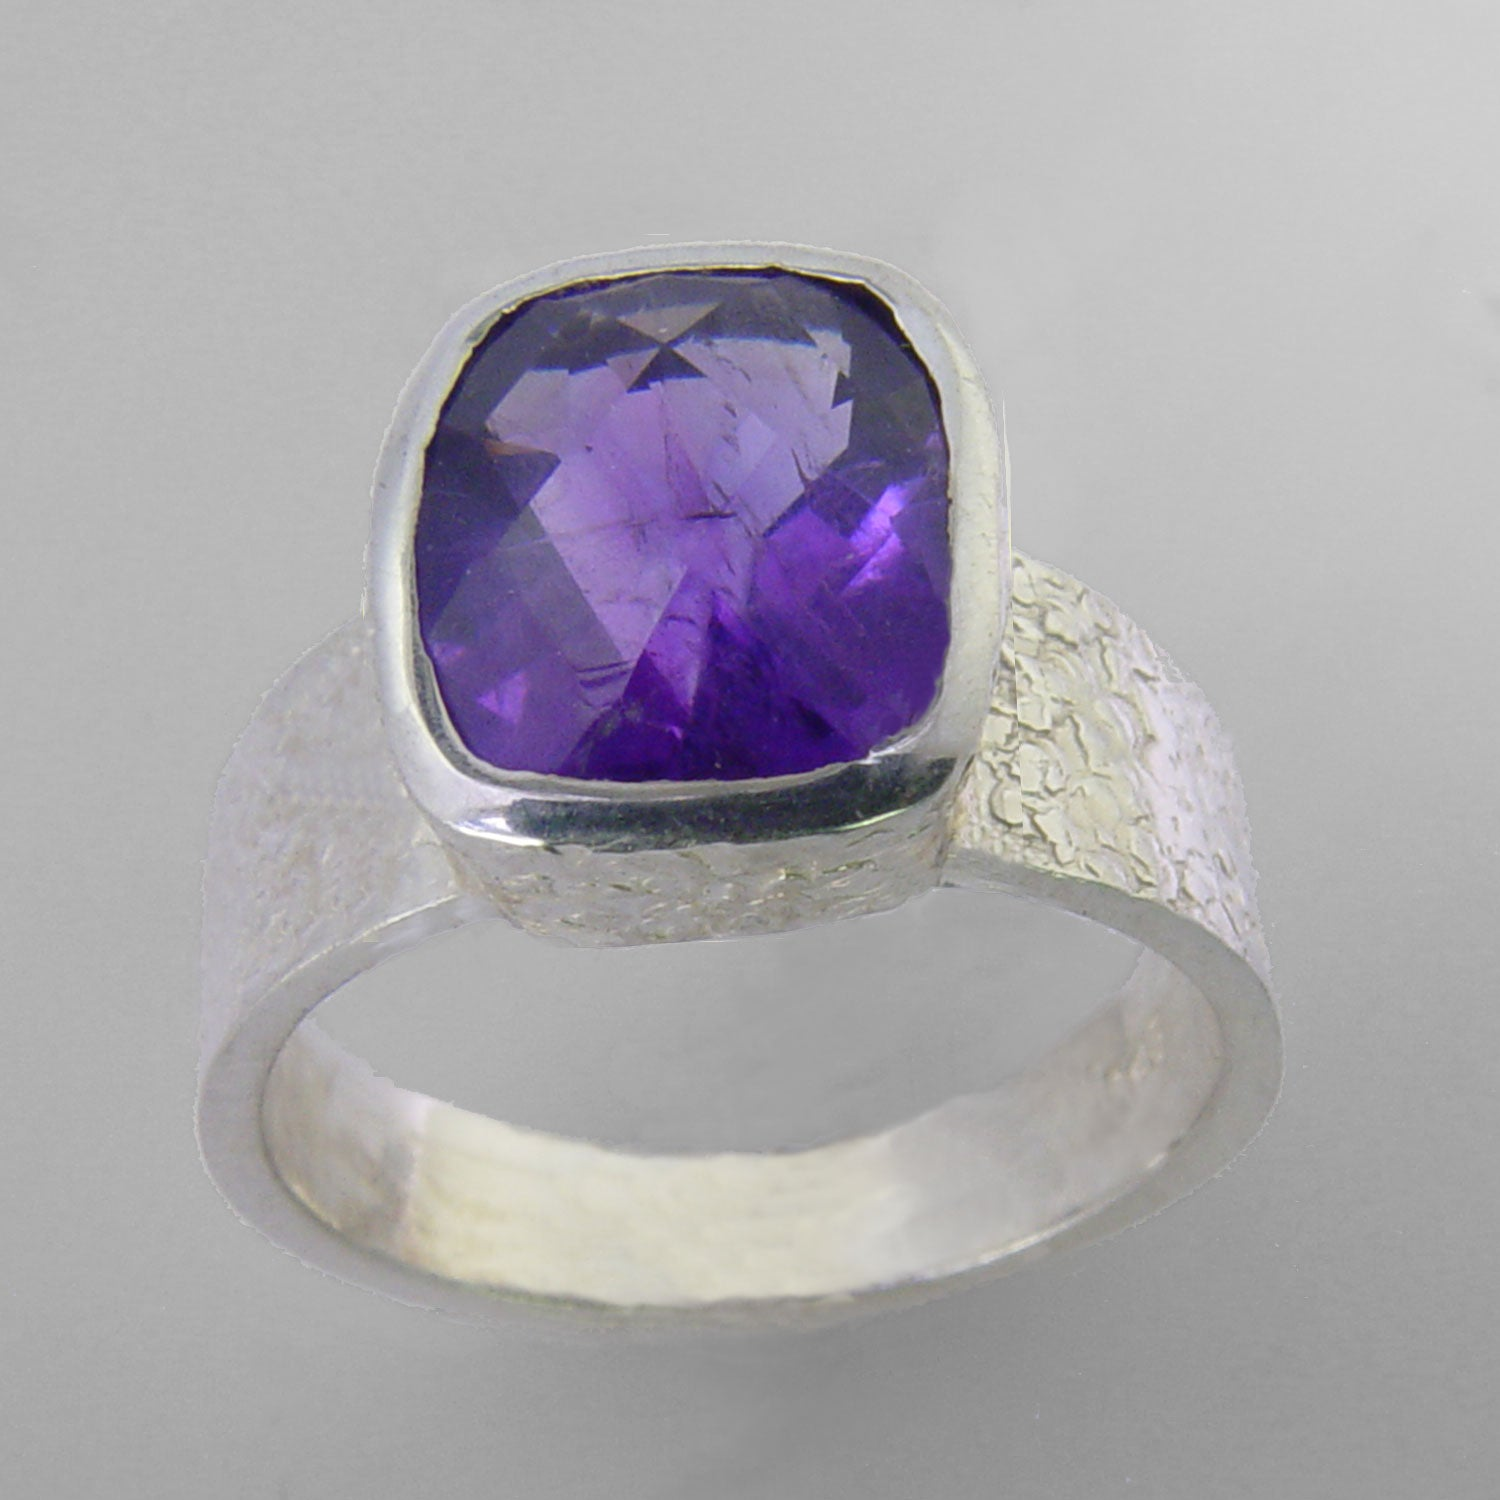 Amethyst 4.0 ct Antique Emerald Bezel Set Sterling Silver Ring, Size 7.5